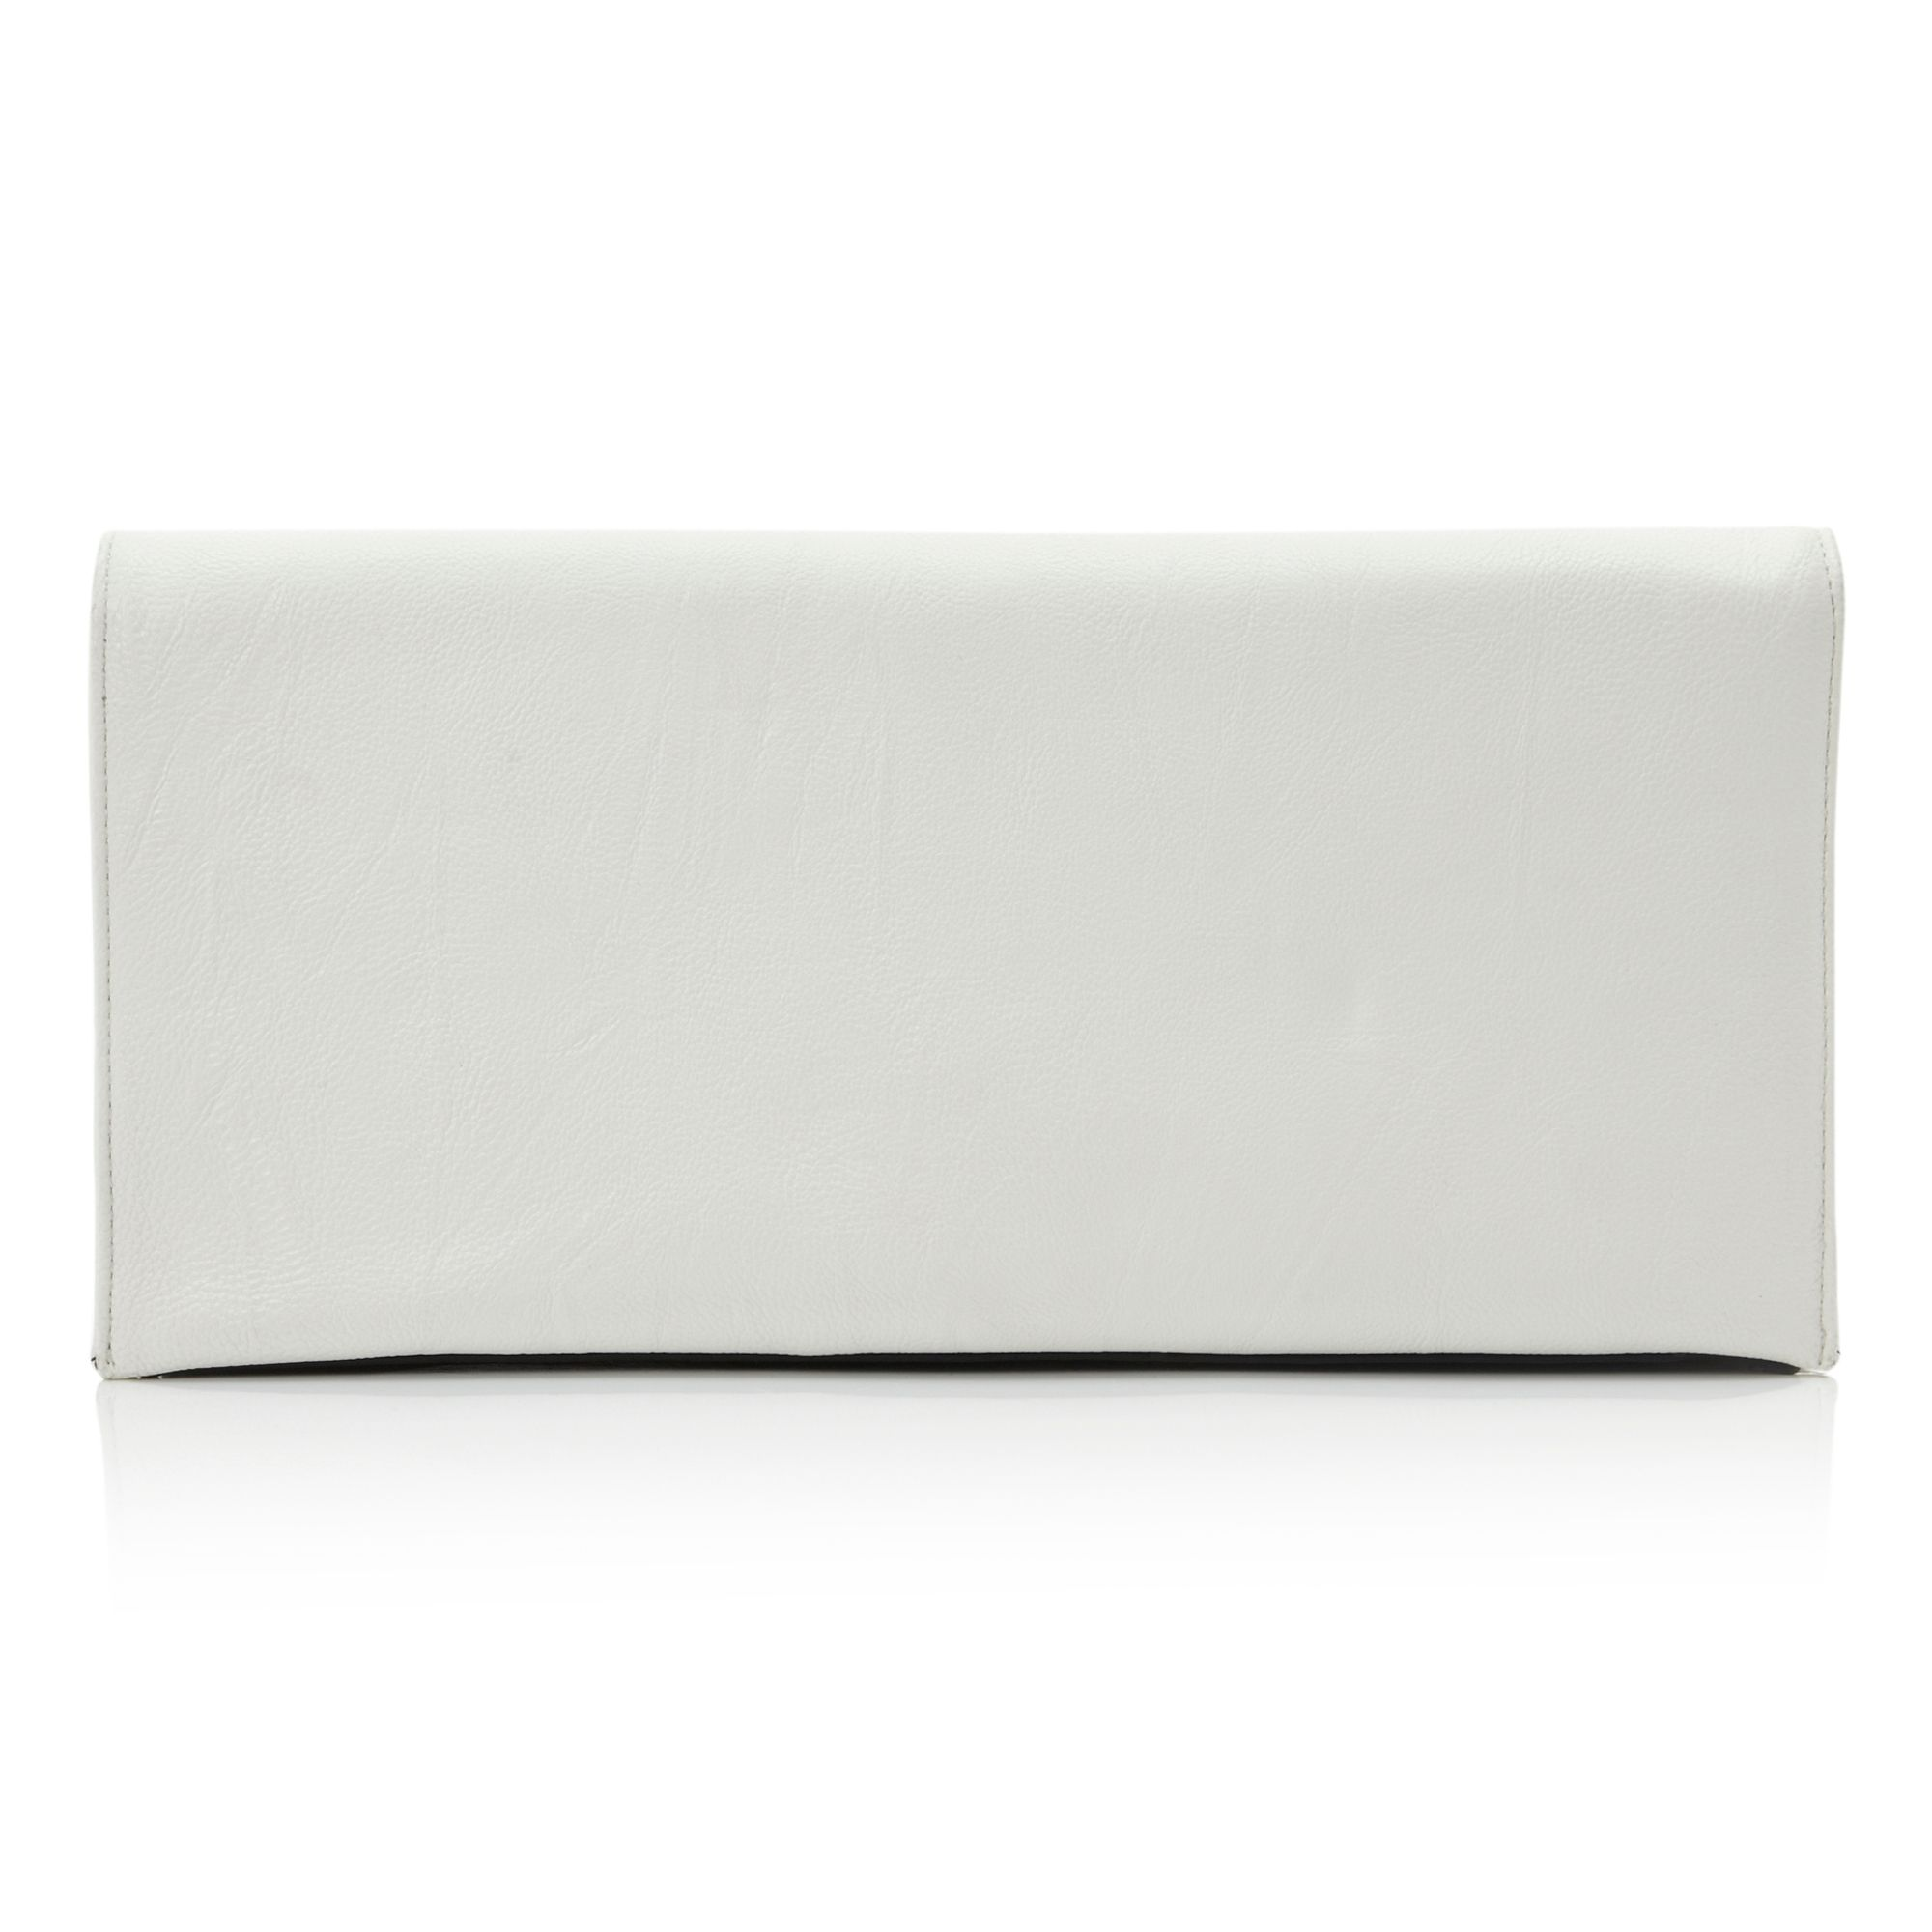 Ellie fold over clutch bag